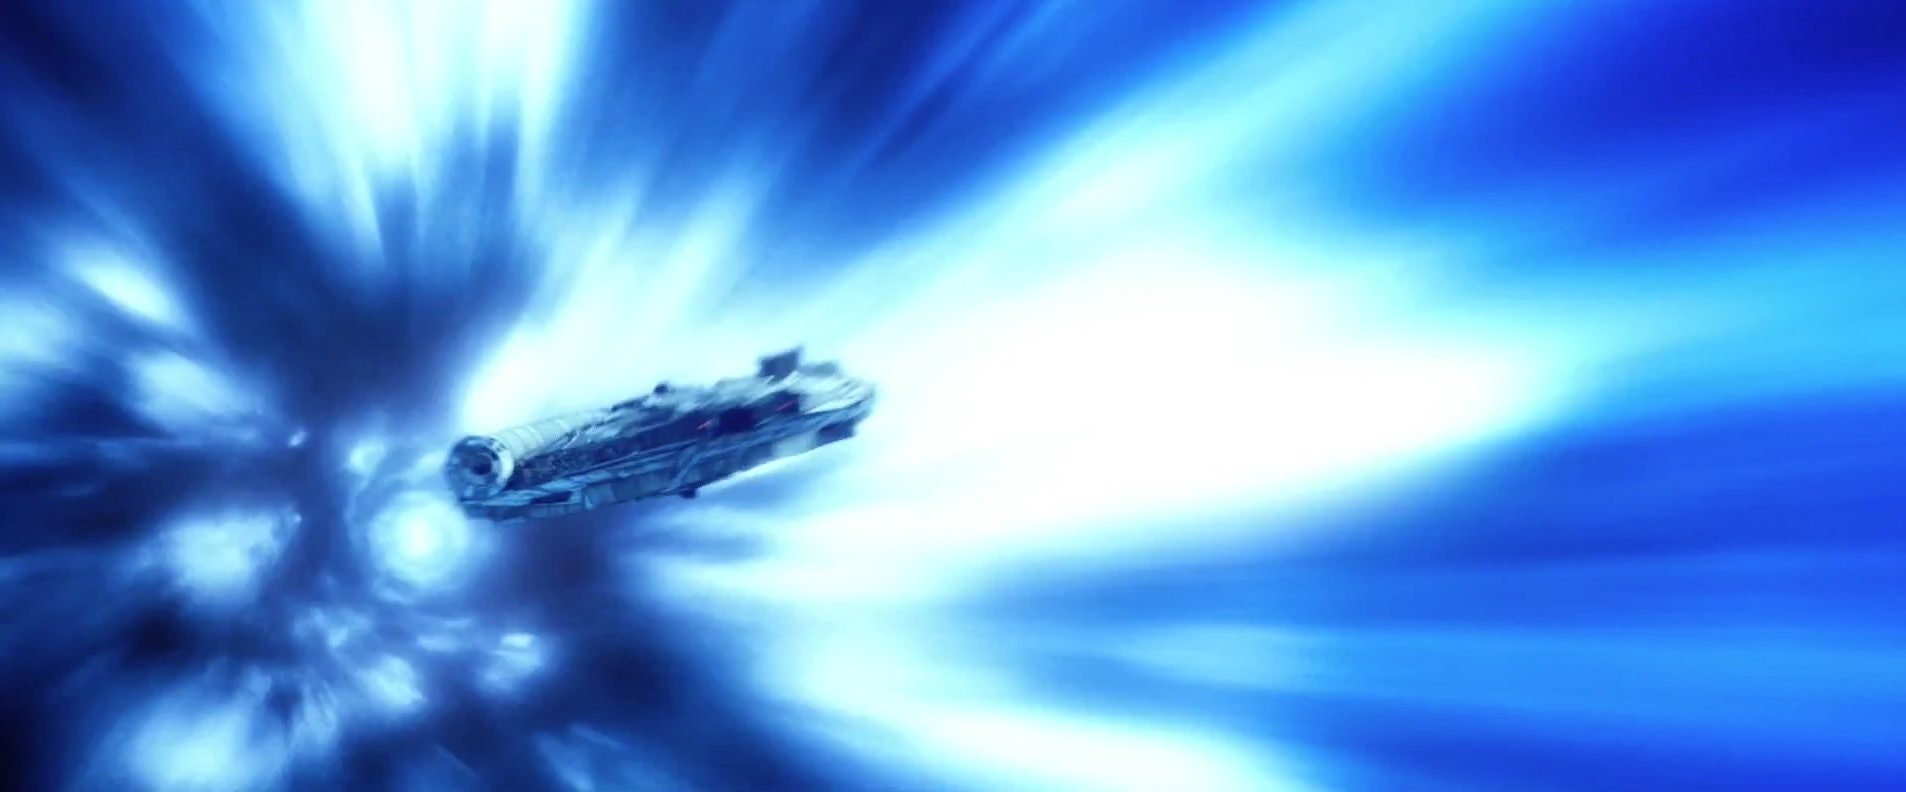 TheMillennium Falcon in hyperspace in 'The Force Awakens'